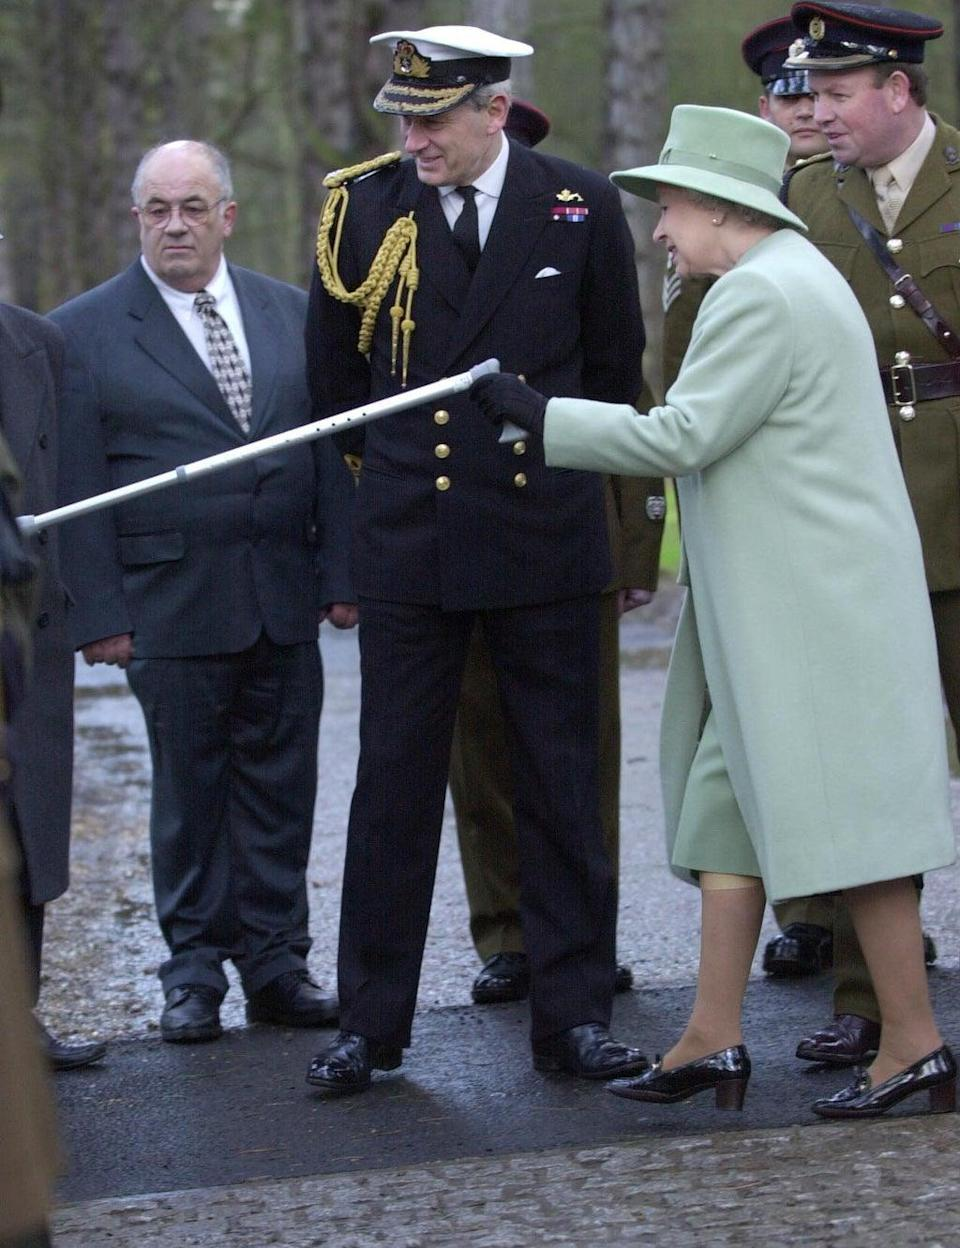 The Queen gestures with her stick in 2003 (PA) (PA Archive)